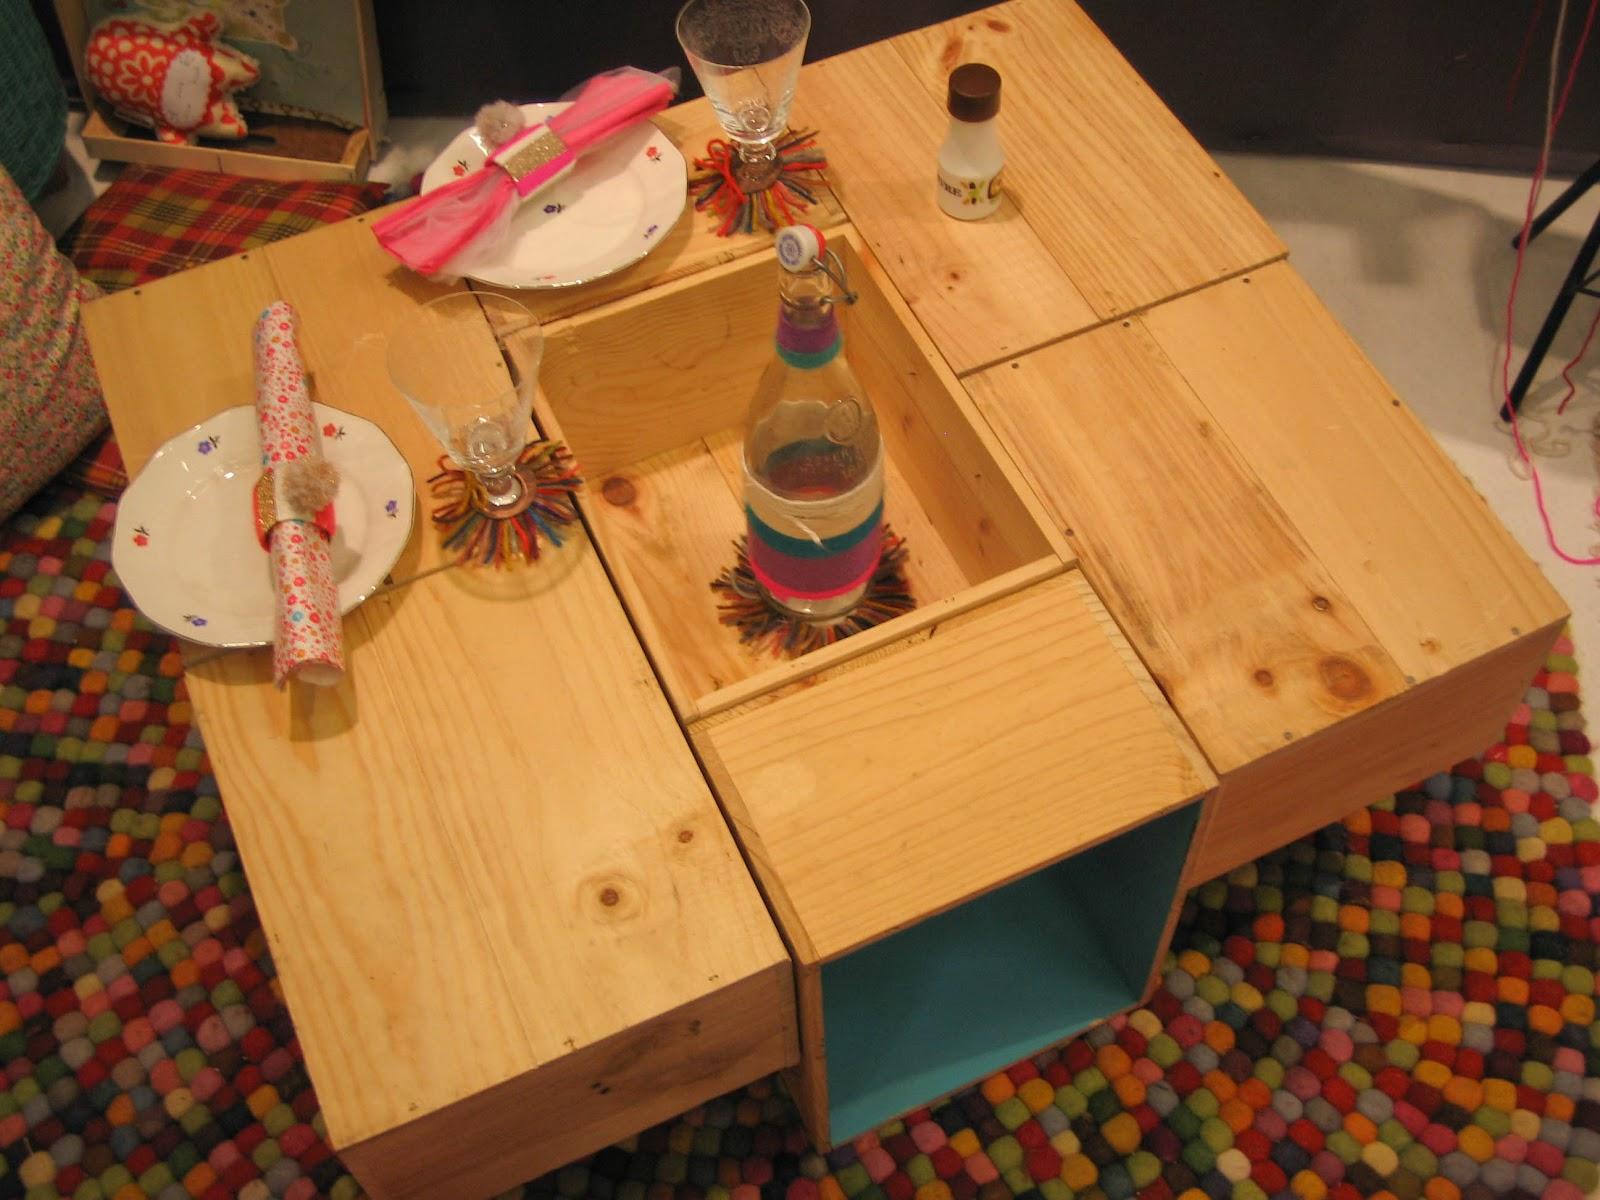 Lovers of mint blog d co boh me et cool lifestyle for Table basse en caisse en bois